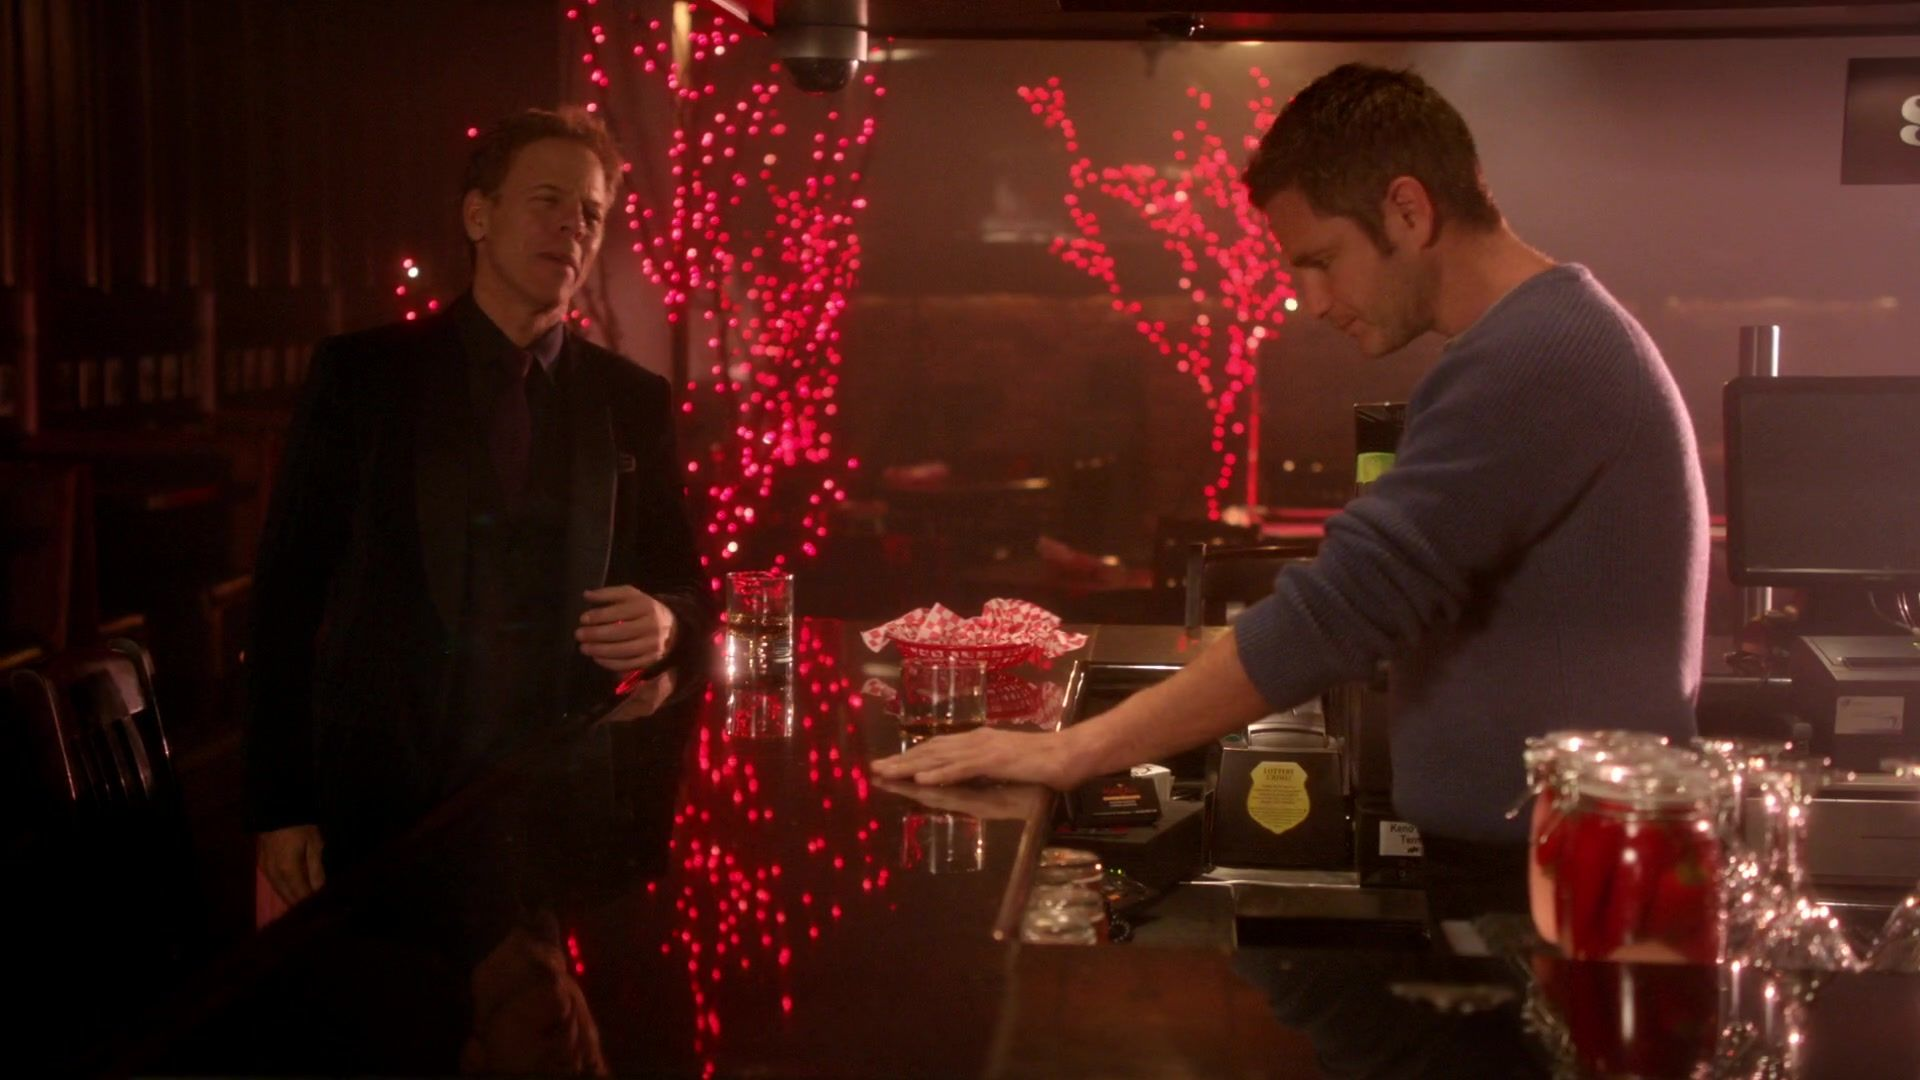 5.15 The Brothers Jones - Once Upon a Time S05E15 1080p 0768 - Once Upon a Time High Quality Screencaps Gallery